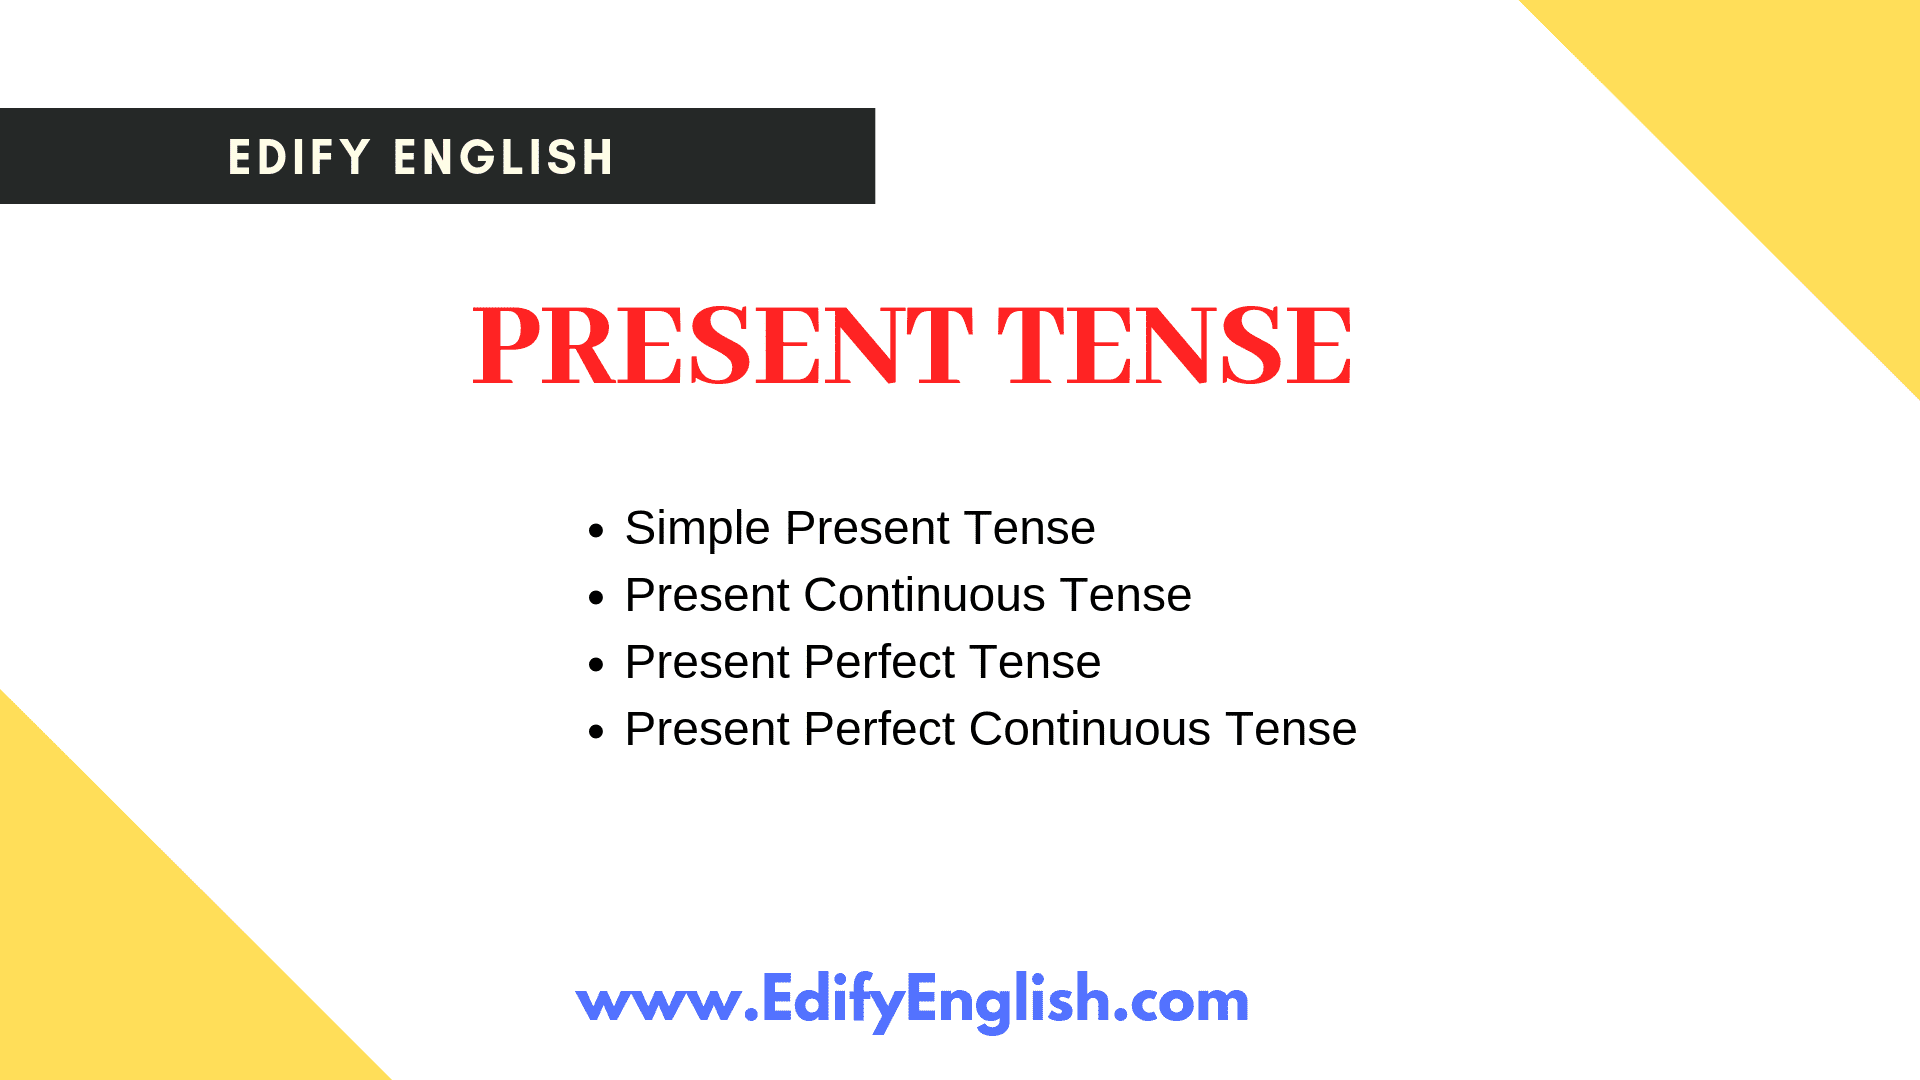 Present Tense - Kinds, Structure, Example Sentences ⋆ Edify English